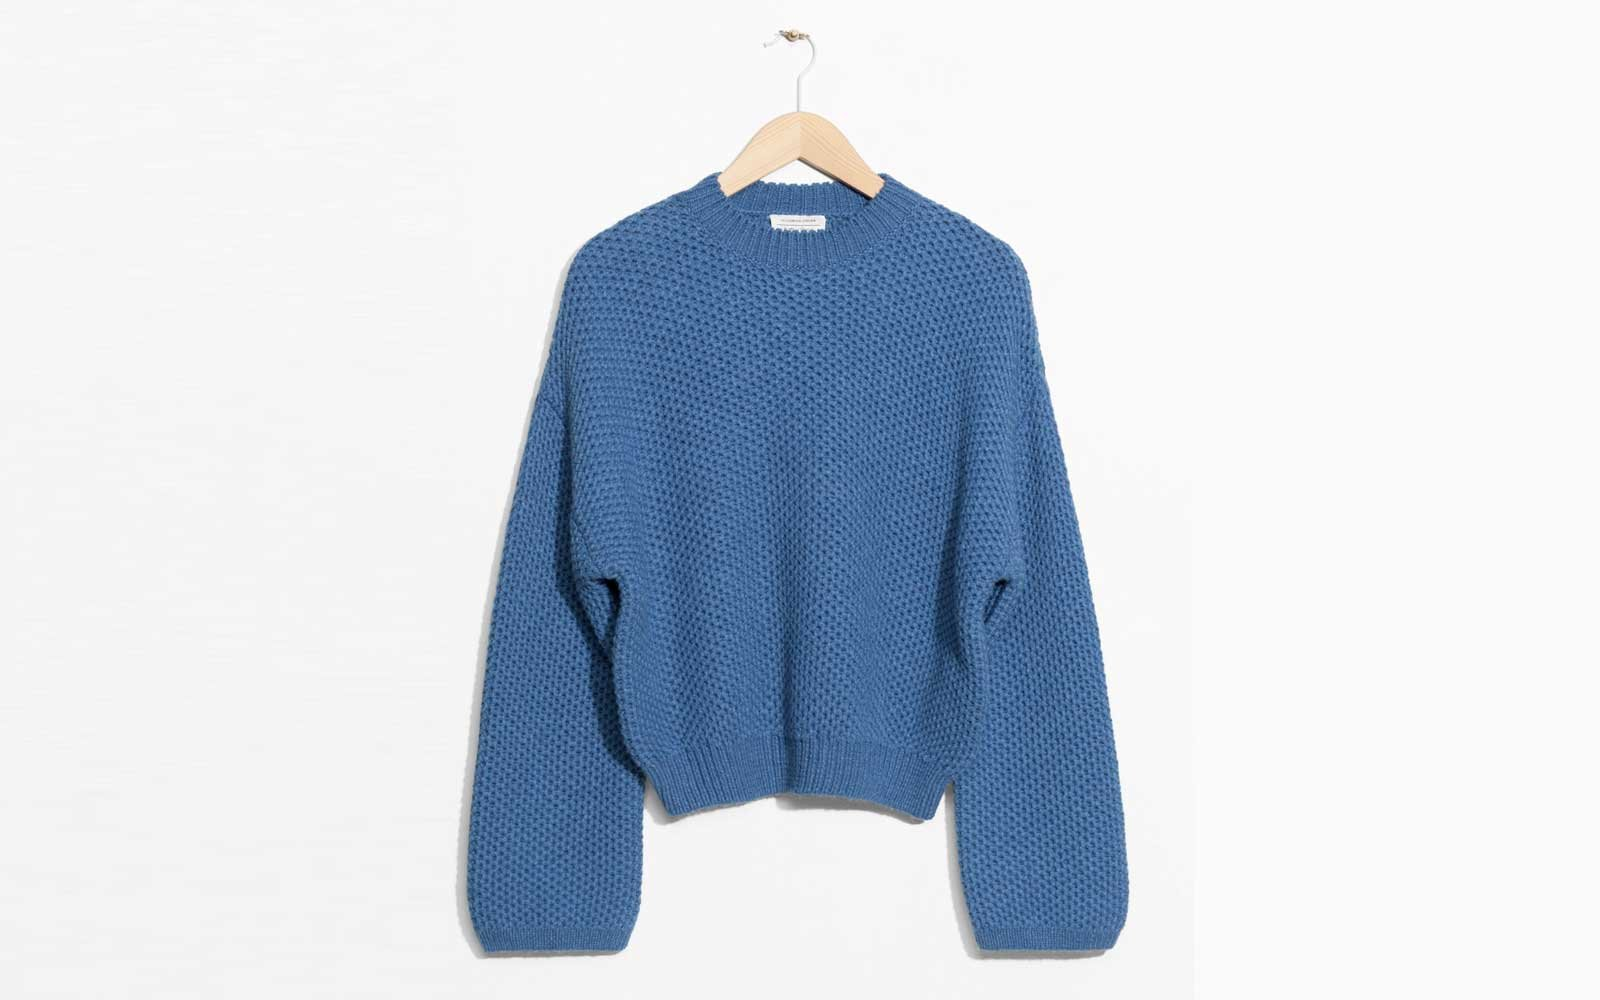 andotherstories-Cropped-Honeycomb-Knit-Sweater-OVRSZECOMF1217